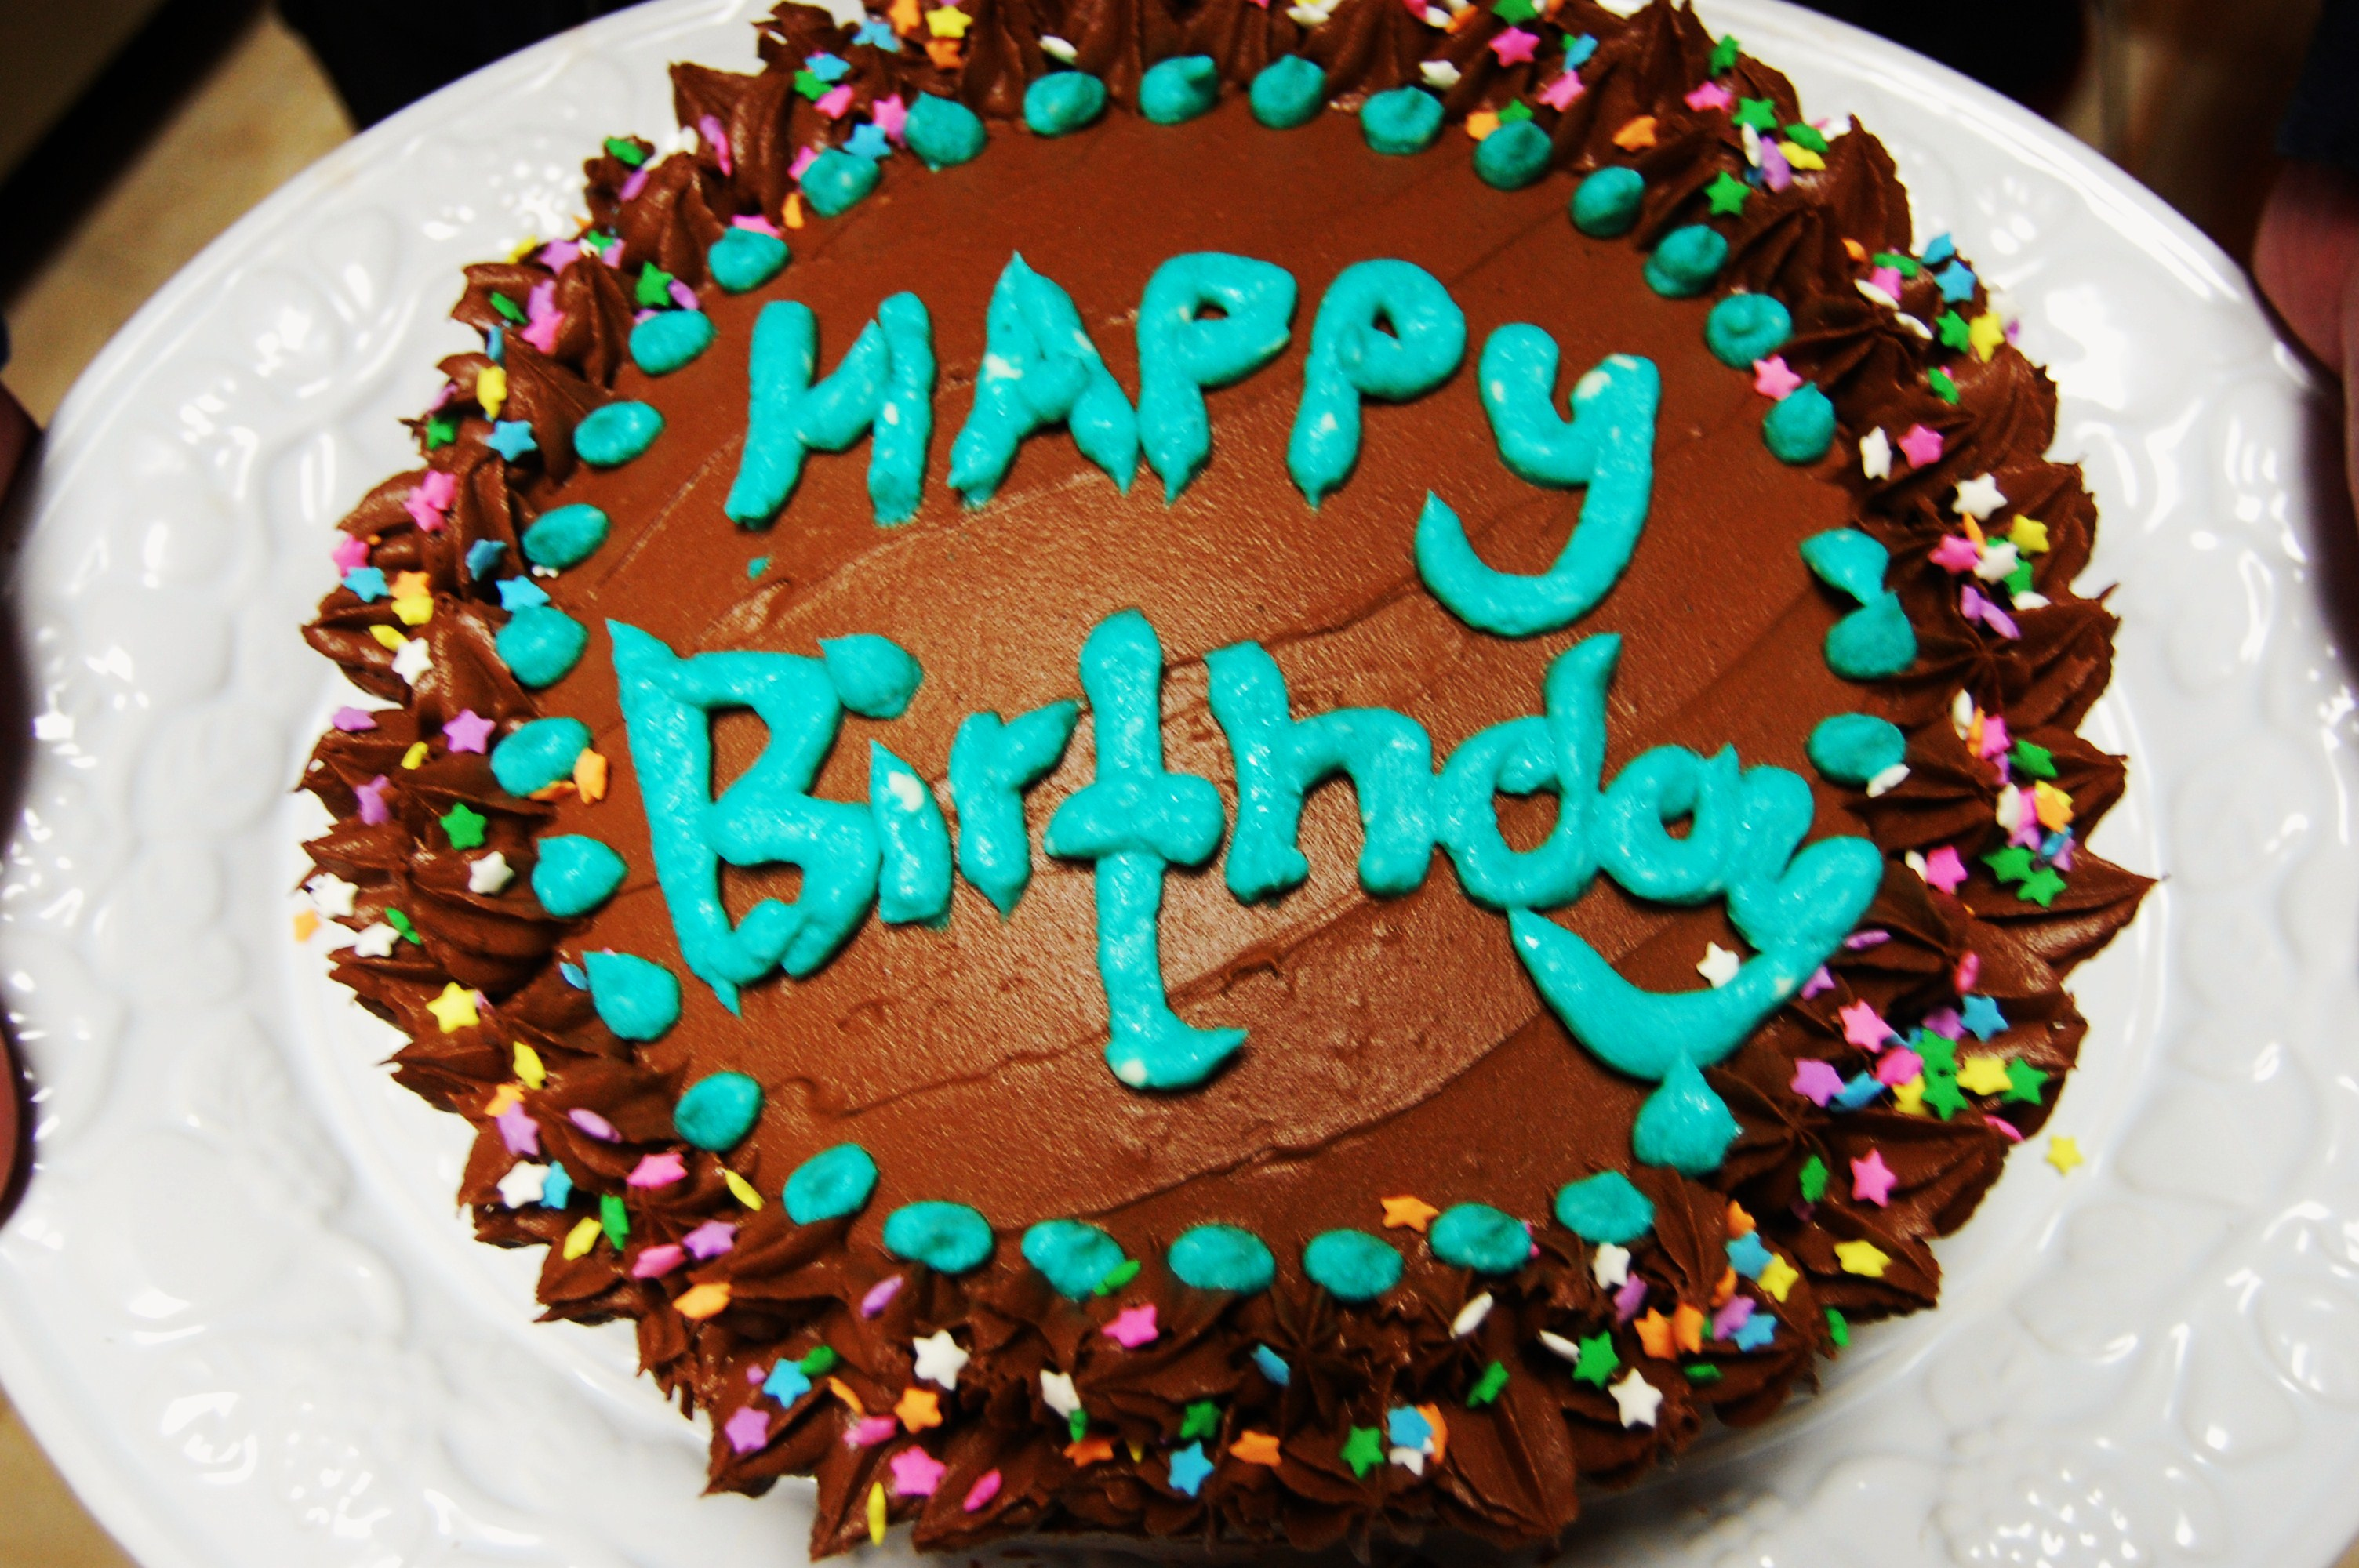 Best Cake Images For Birthday : Double Layer Cake with Chocolate Fudge Frosting ...